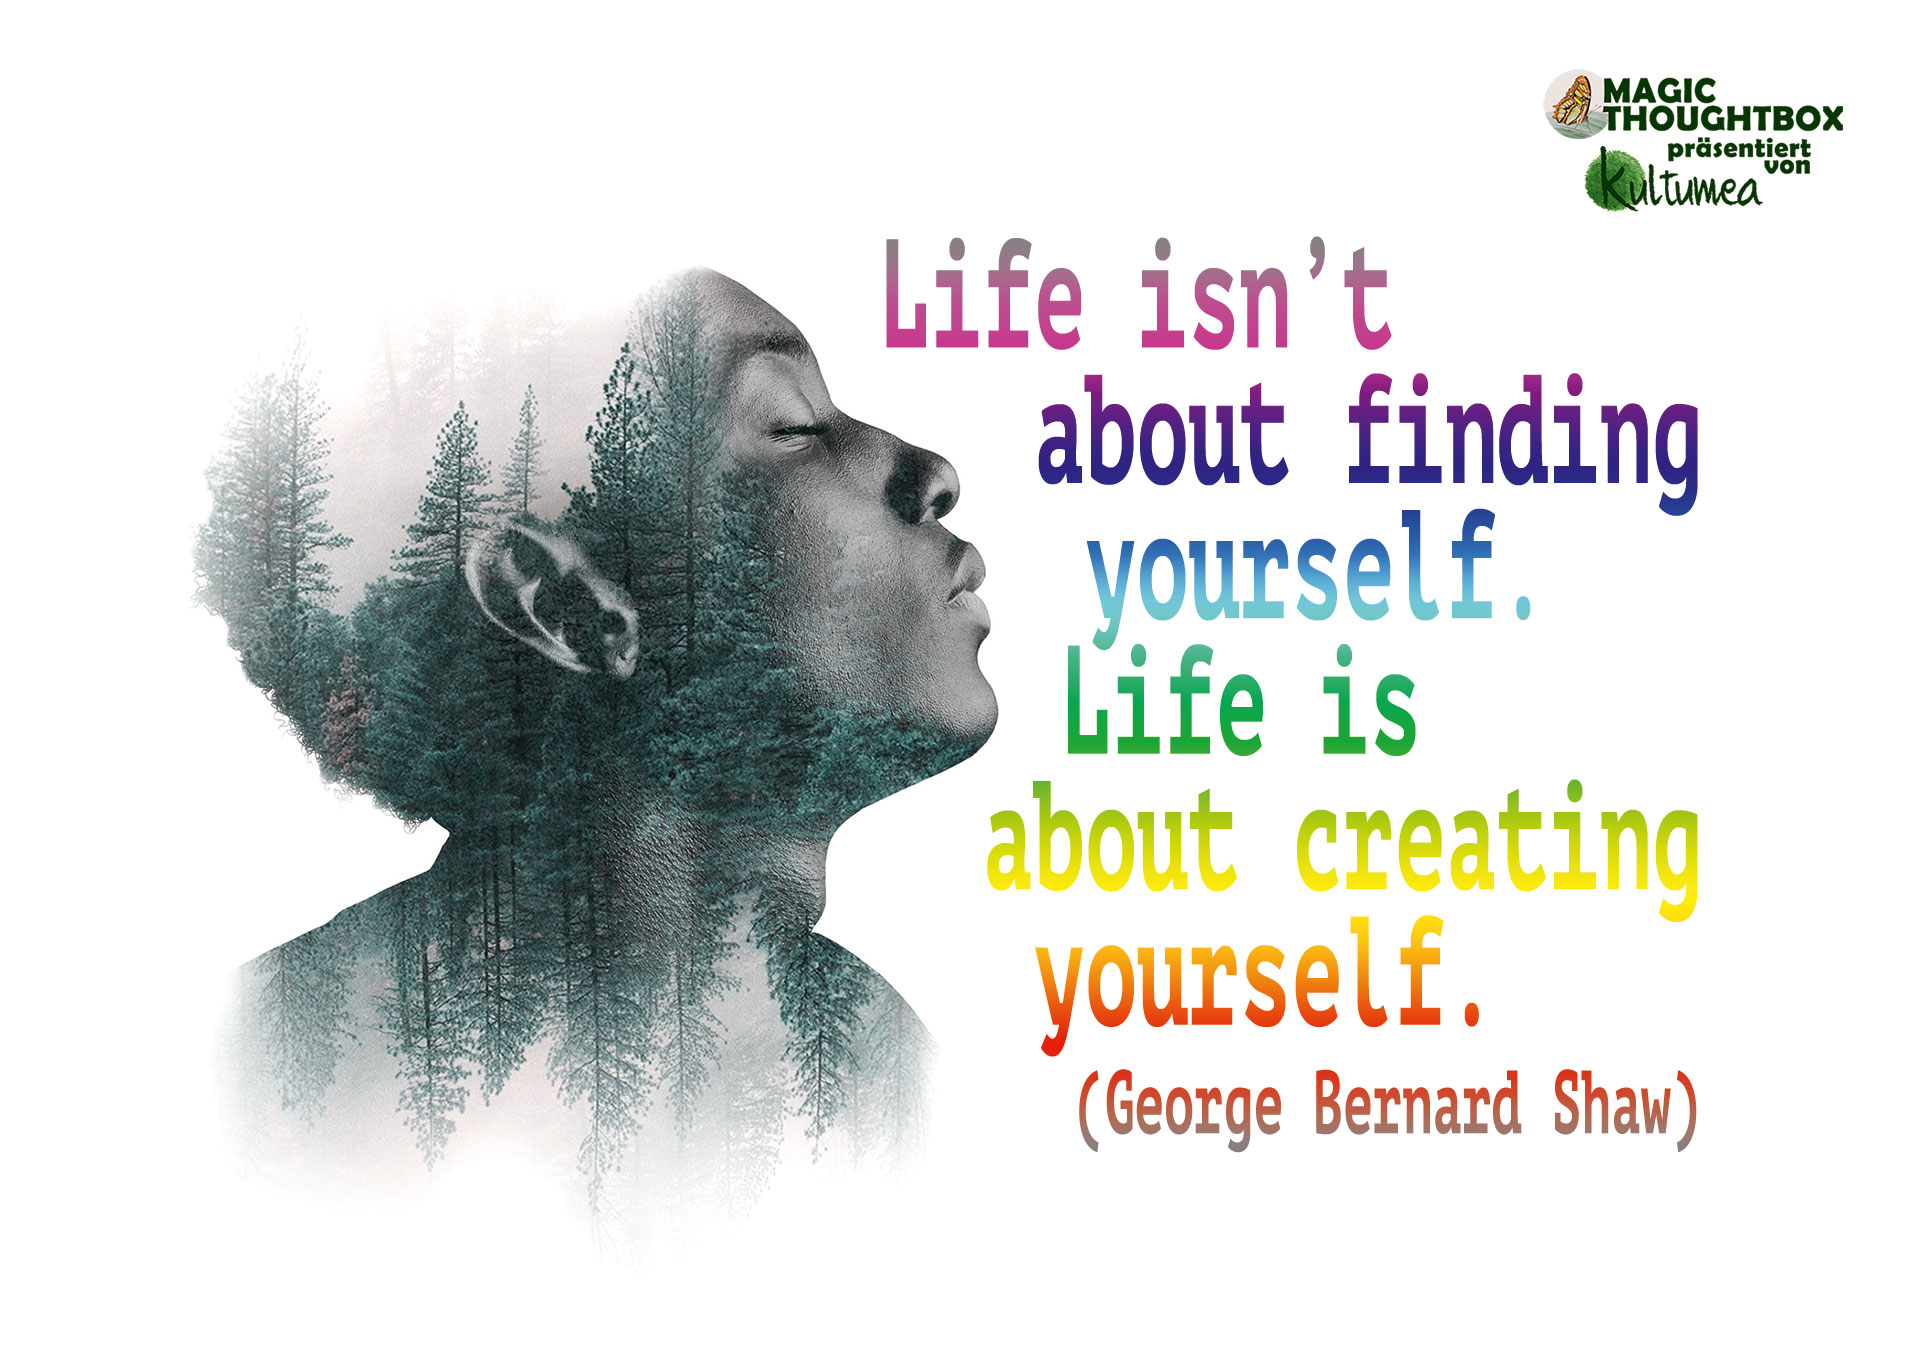 Life isn't about finding yourself. Life is about creating yourself. (George Bernard Shaw)